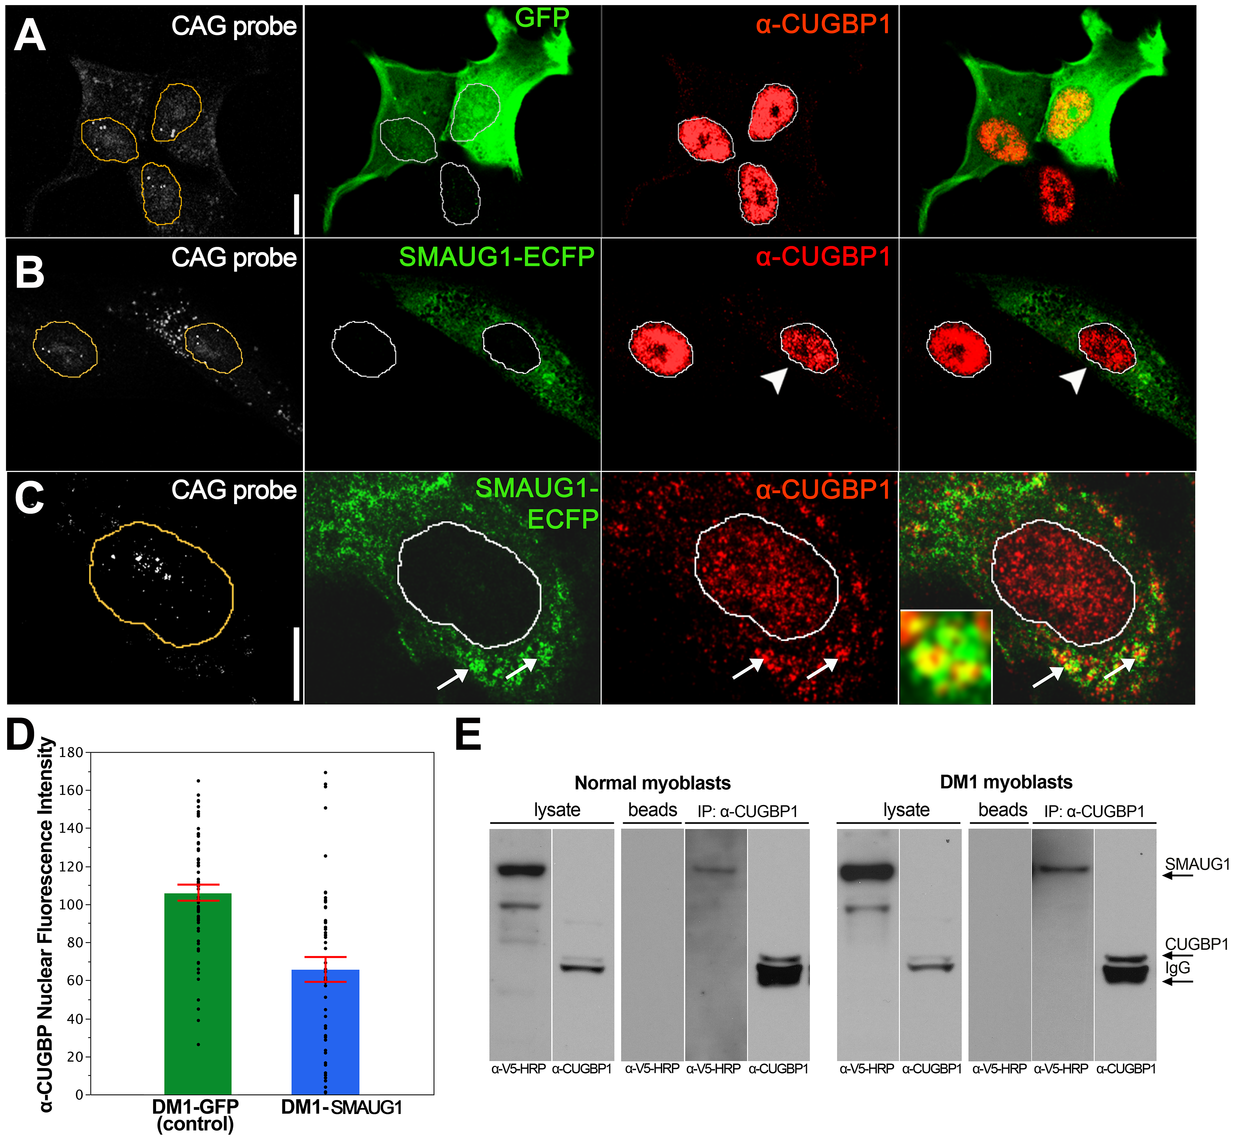 SMAUG1 and CUGBP1 co-localize and physically interact in DM1 myoblasts.